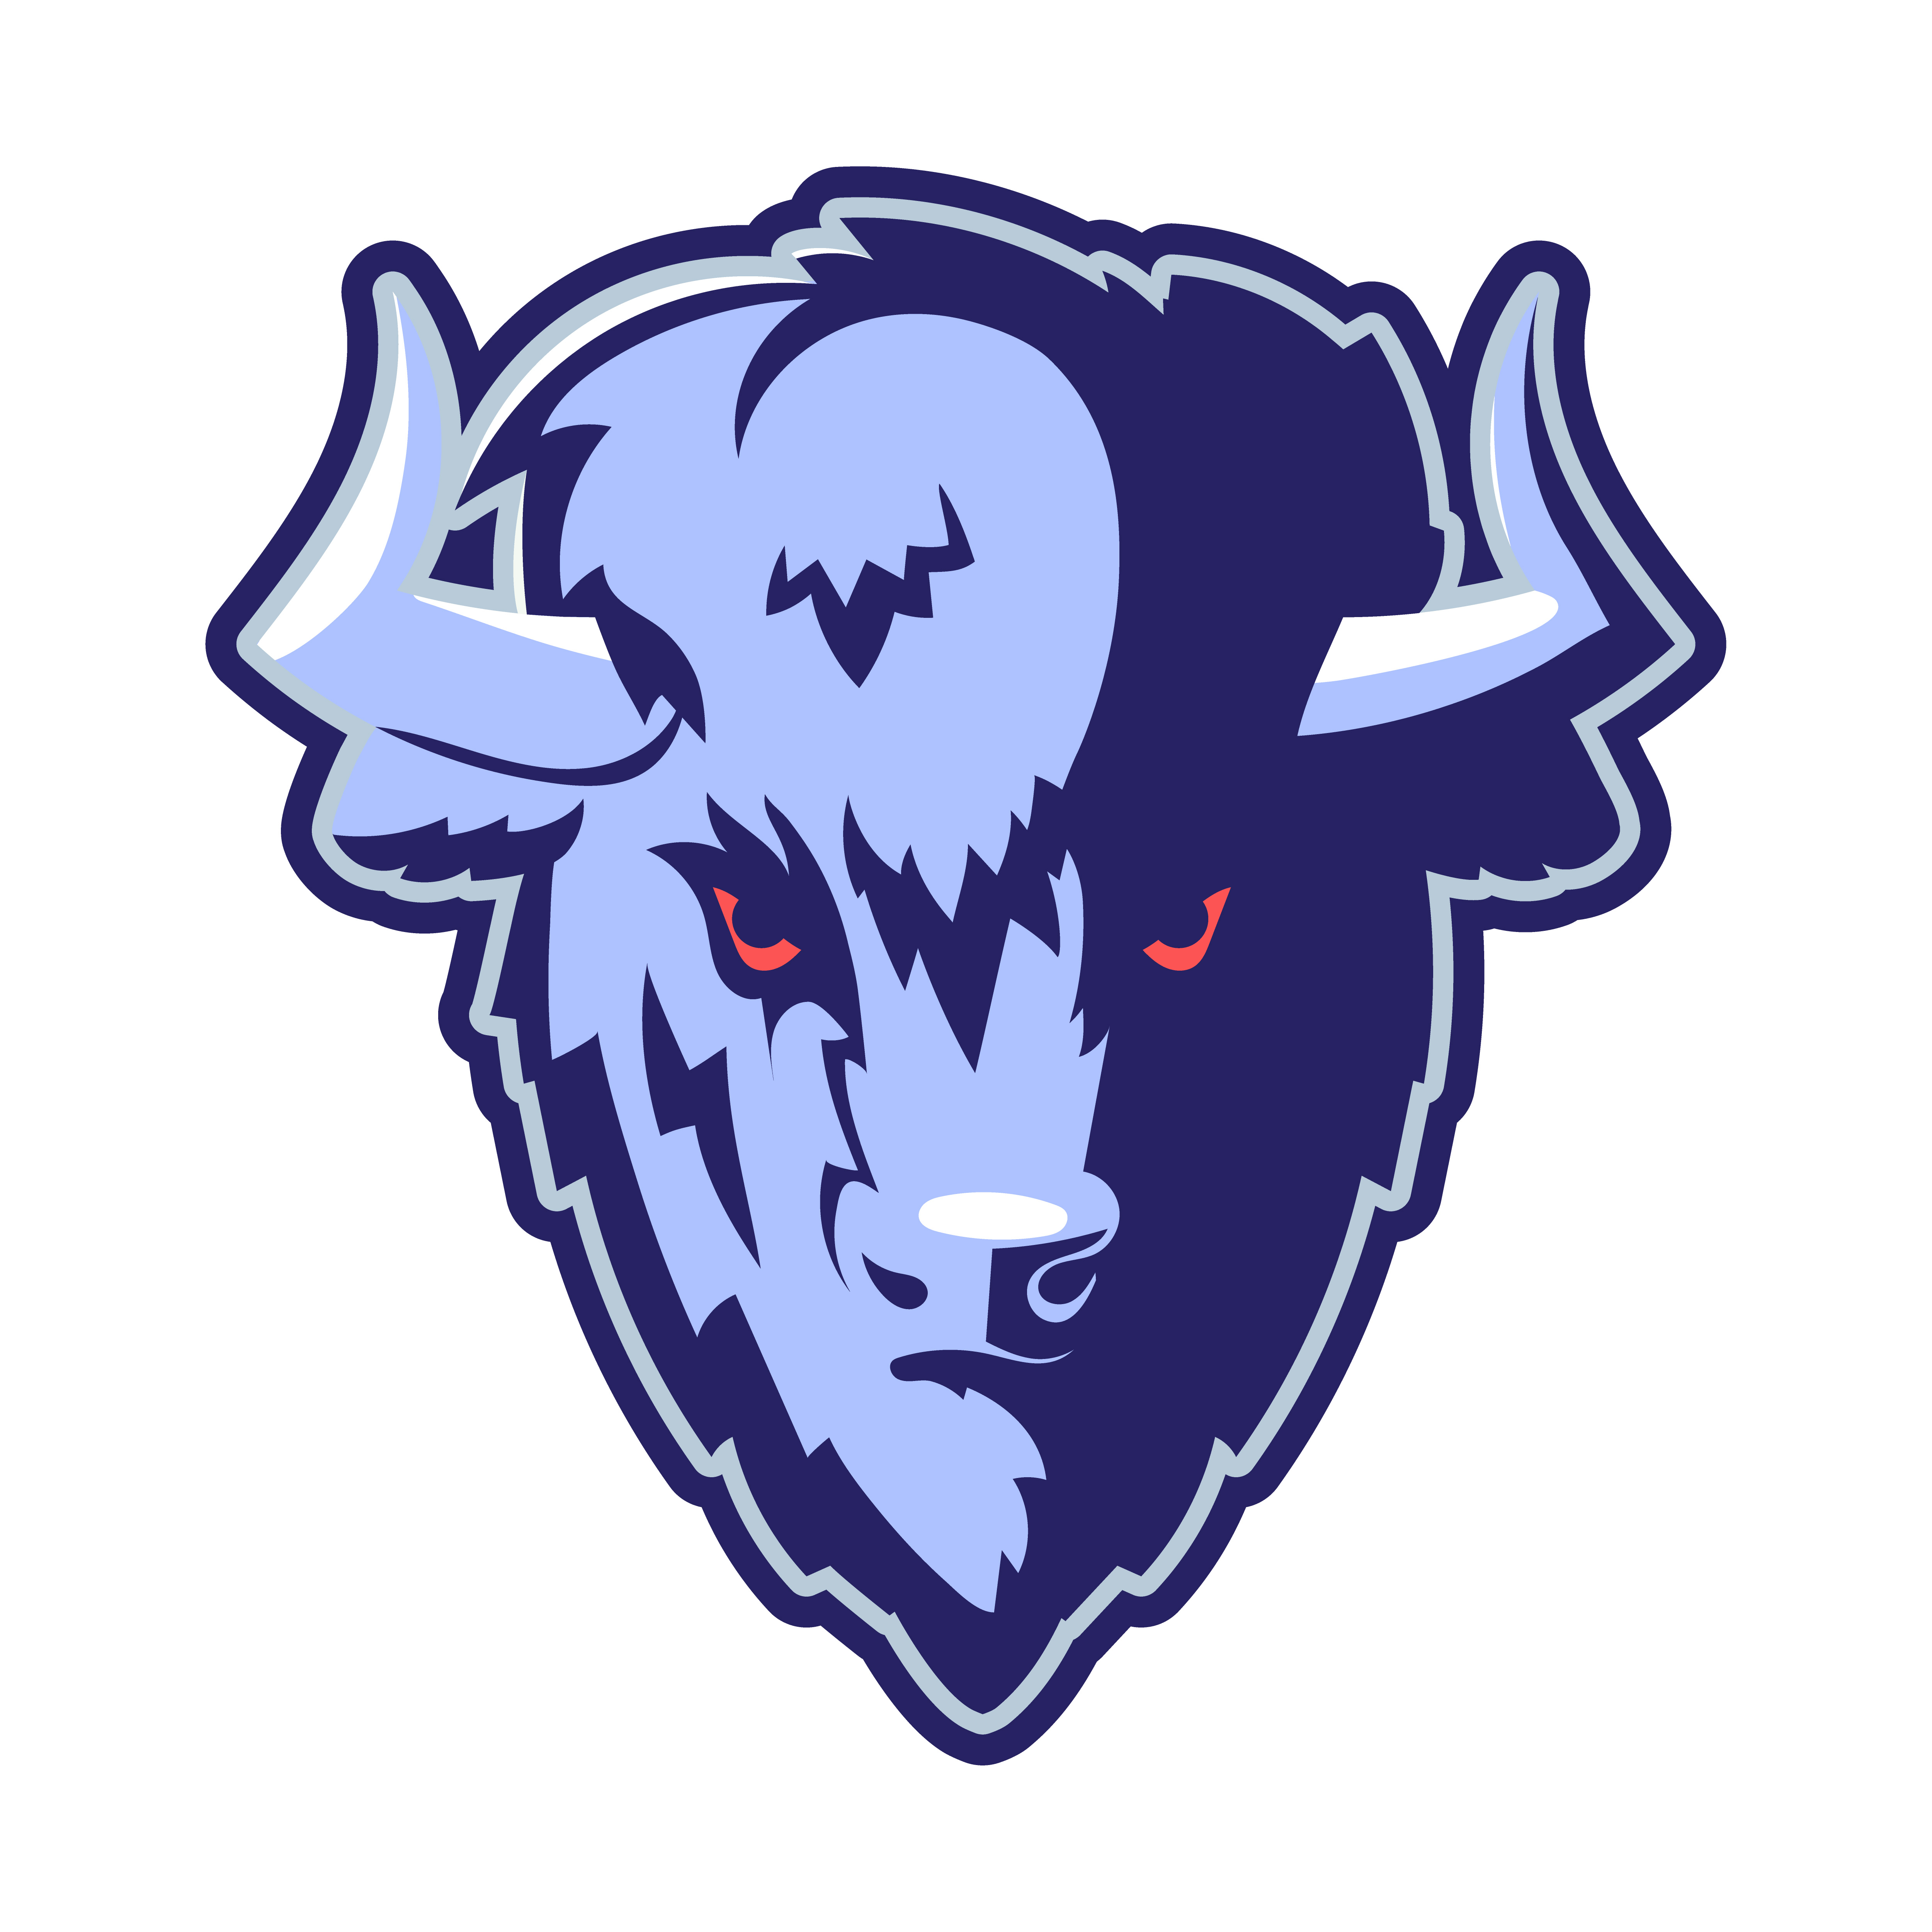 Buffalo Head Logo Mascot.